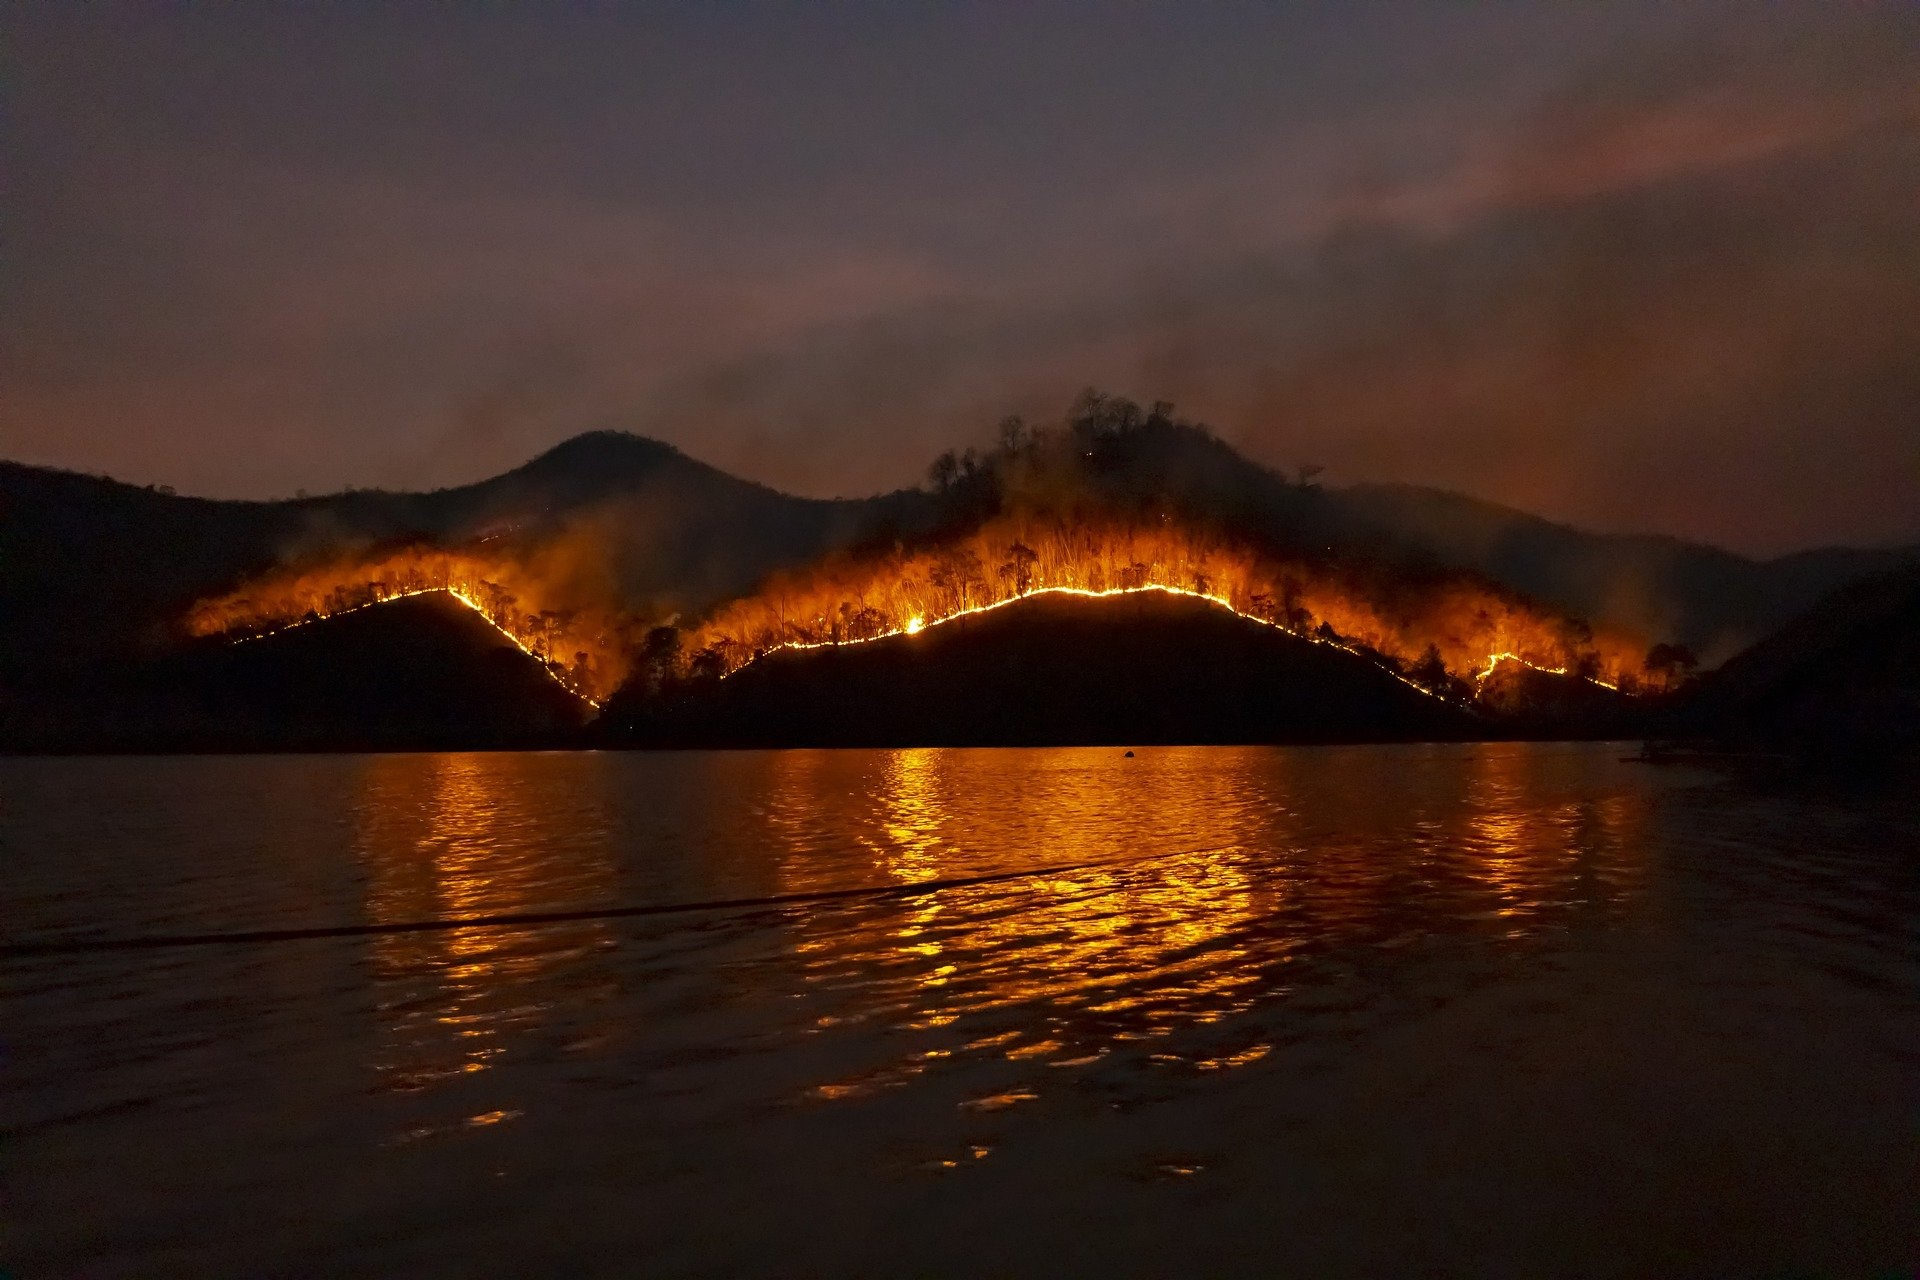 One-of-the-raging-bushfires-during-2019-2020---pic-courtesy-OceanWatch-Australia